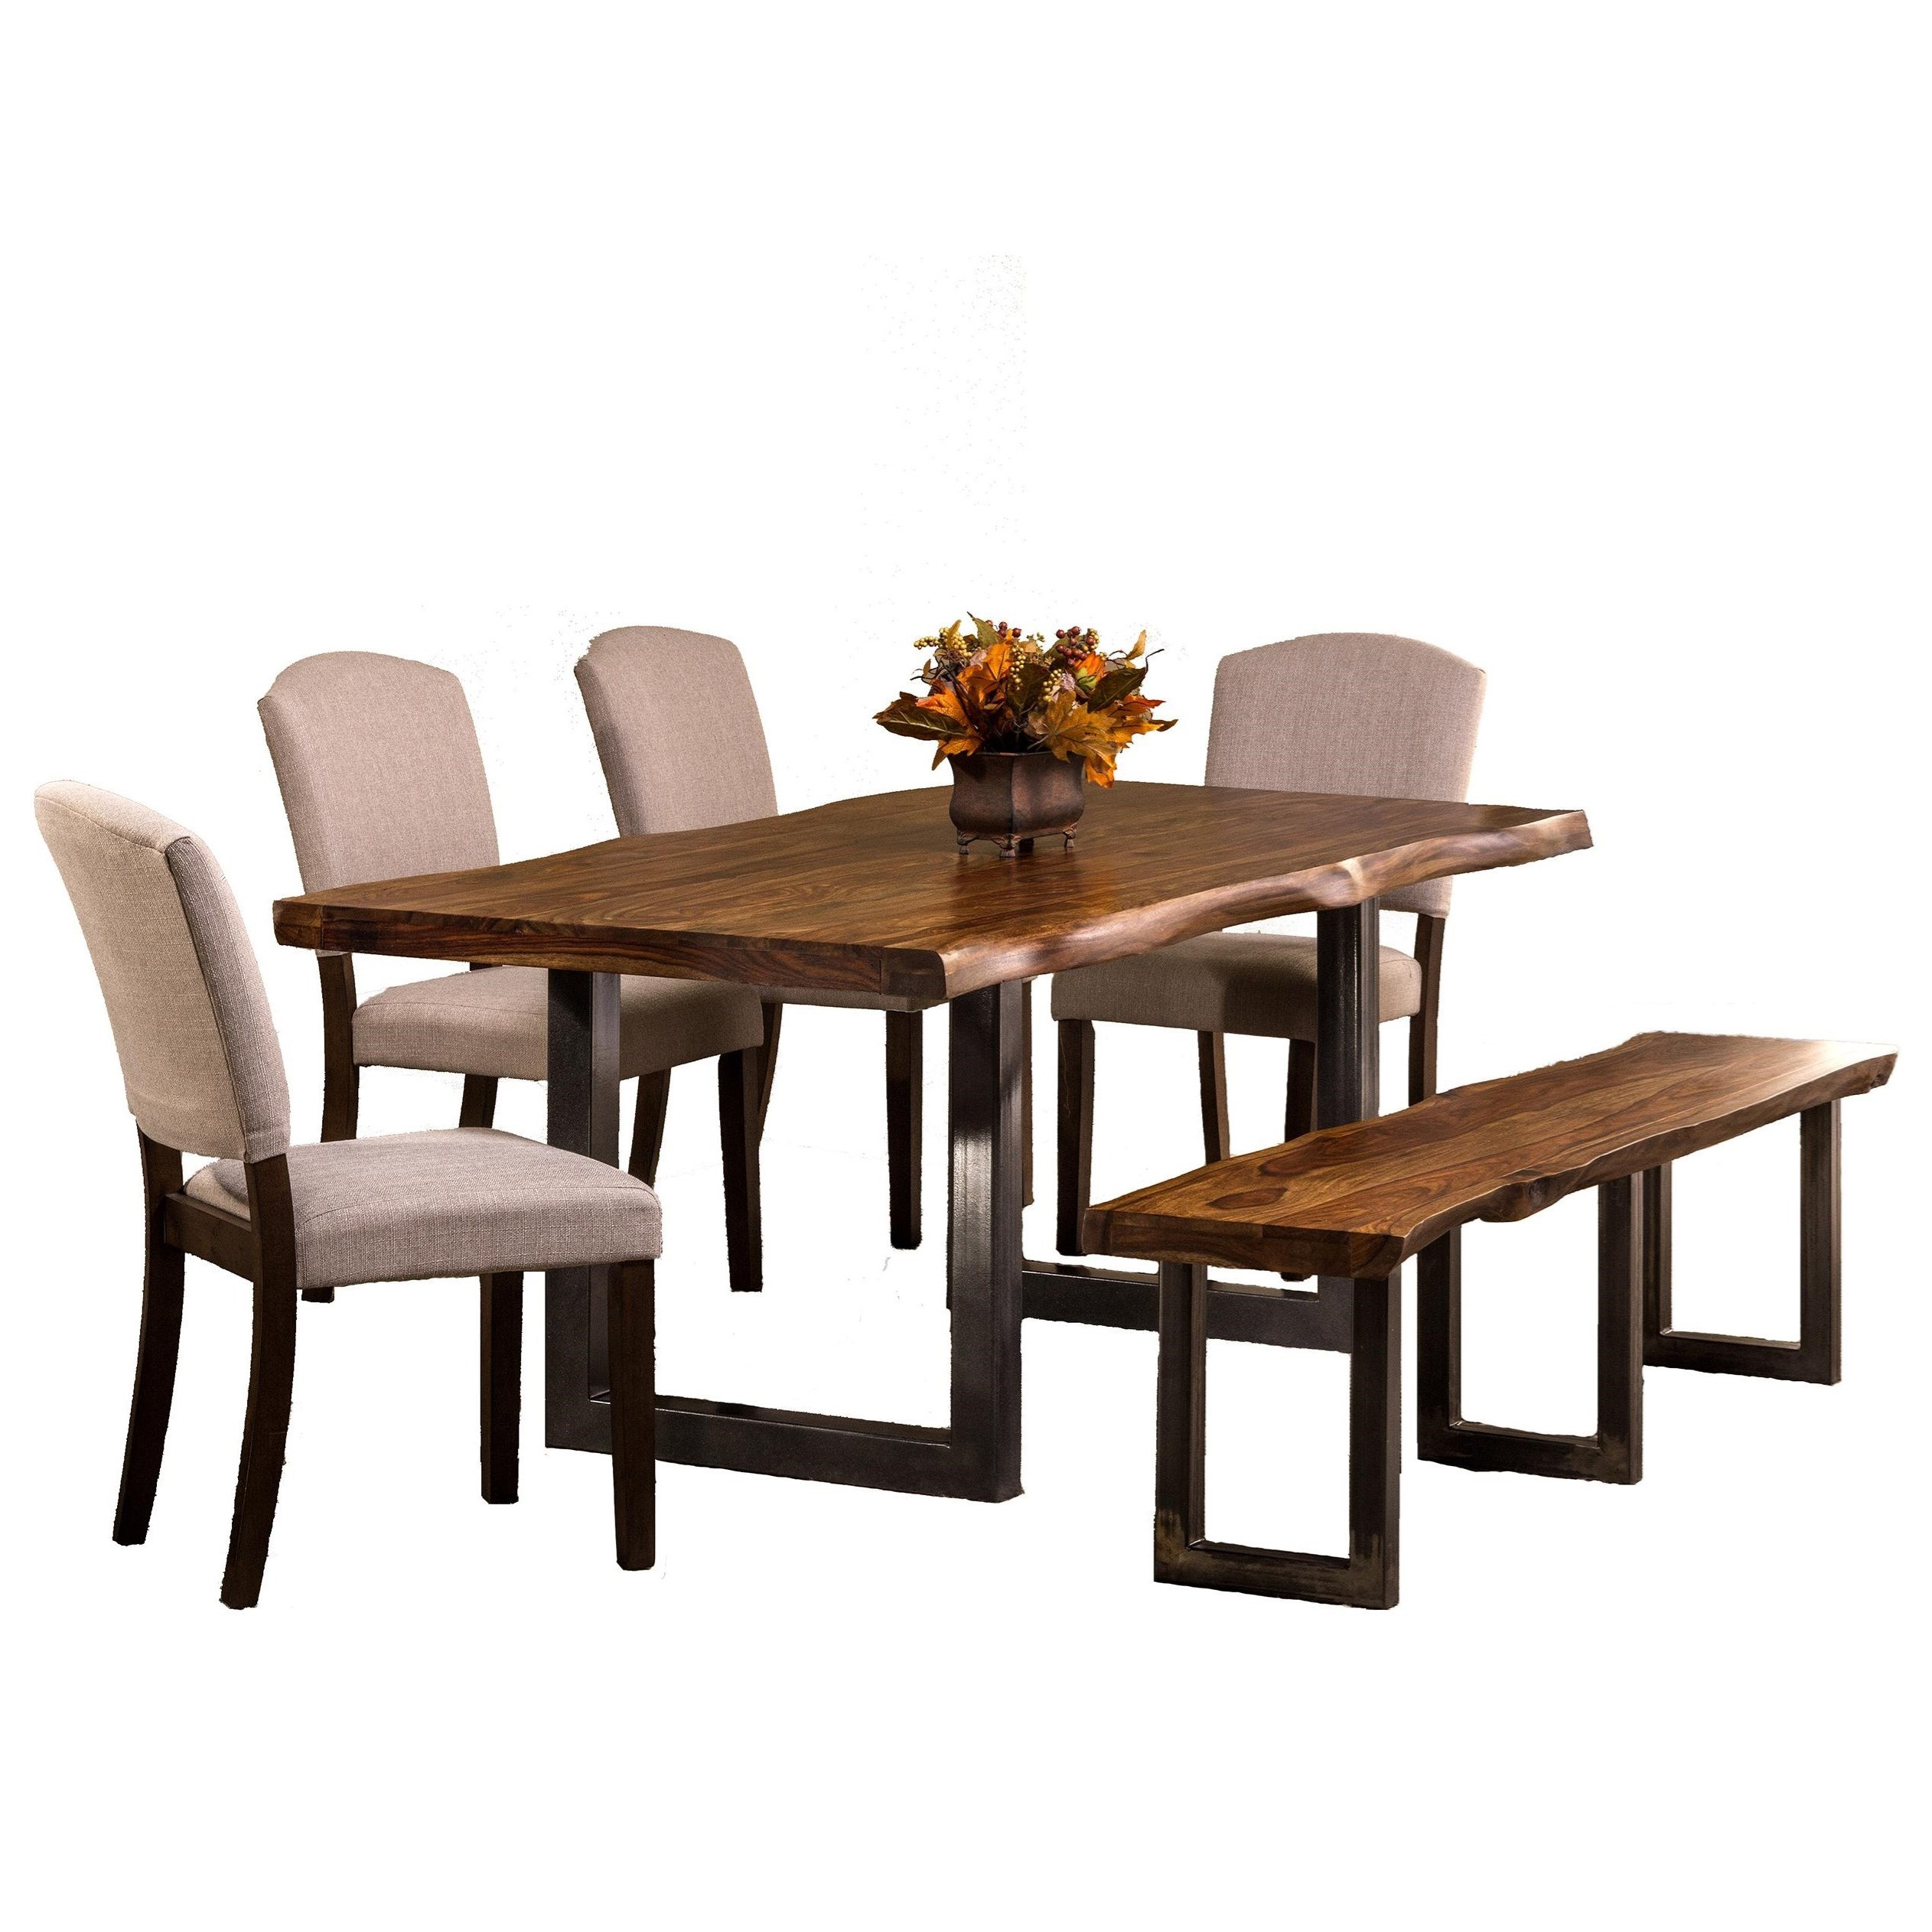 Exceptional Hillsdale Emerson 6 Piece Rectangle Dining Set   Item Number: 5674DTBHC